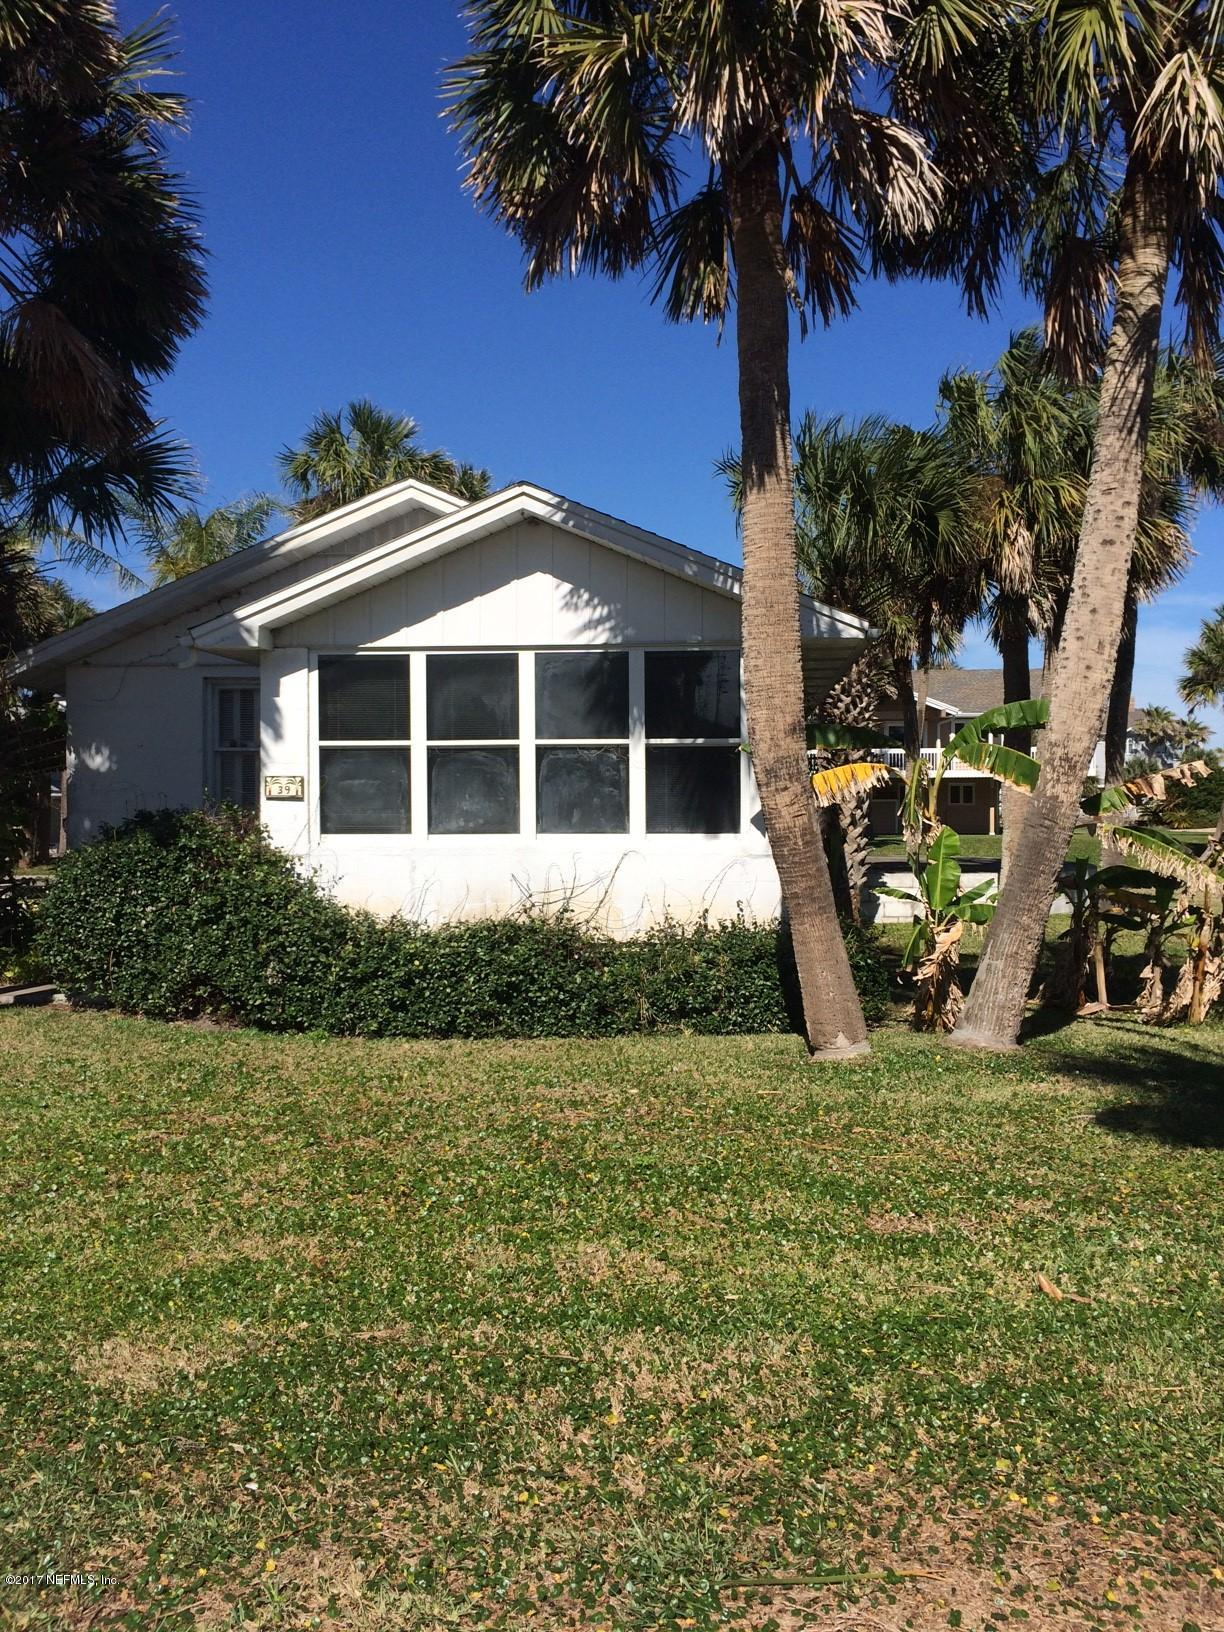 39 35TH, JACKSONVILLE BEACH, FLORIDA 32250, 3 Bedrooms Bedrooms, ,2 BathroomsBathrooms,Residential - single family,For sale,35TH,869030